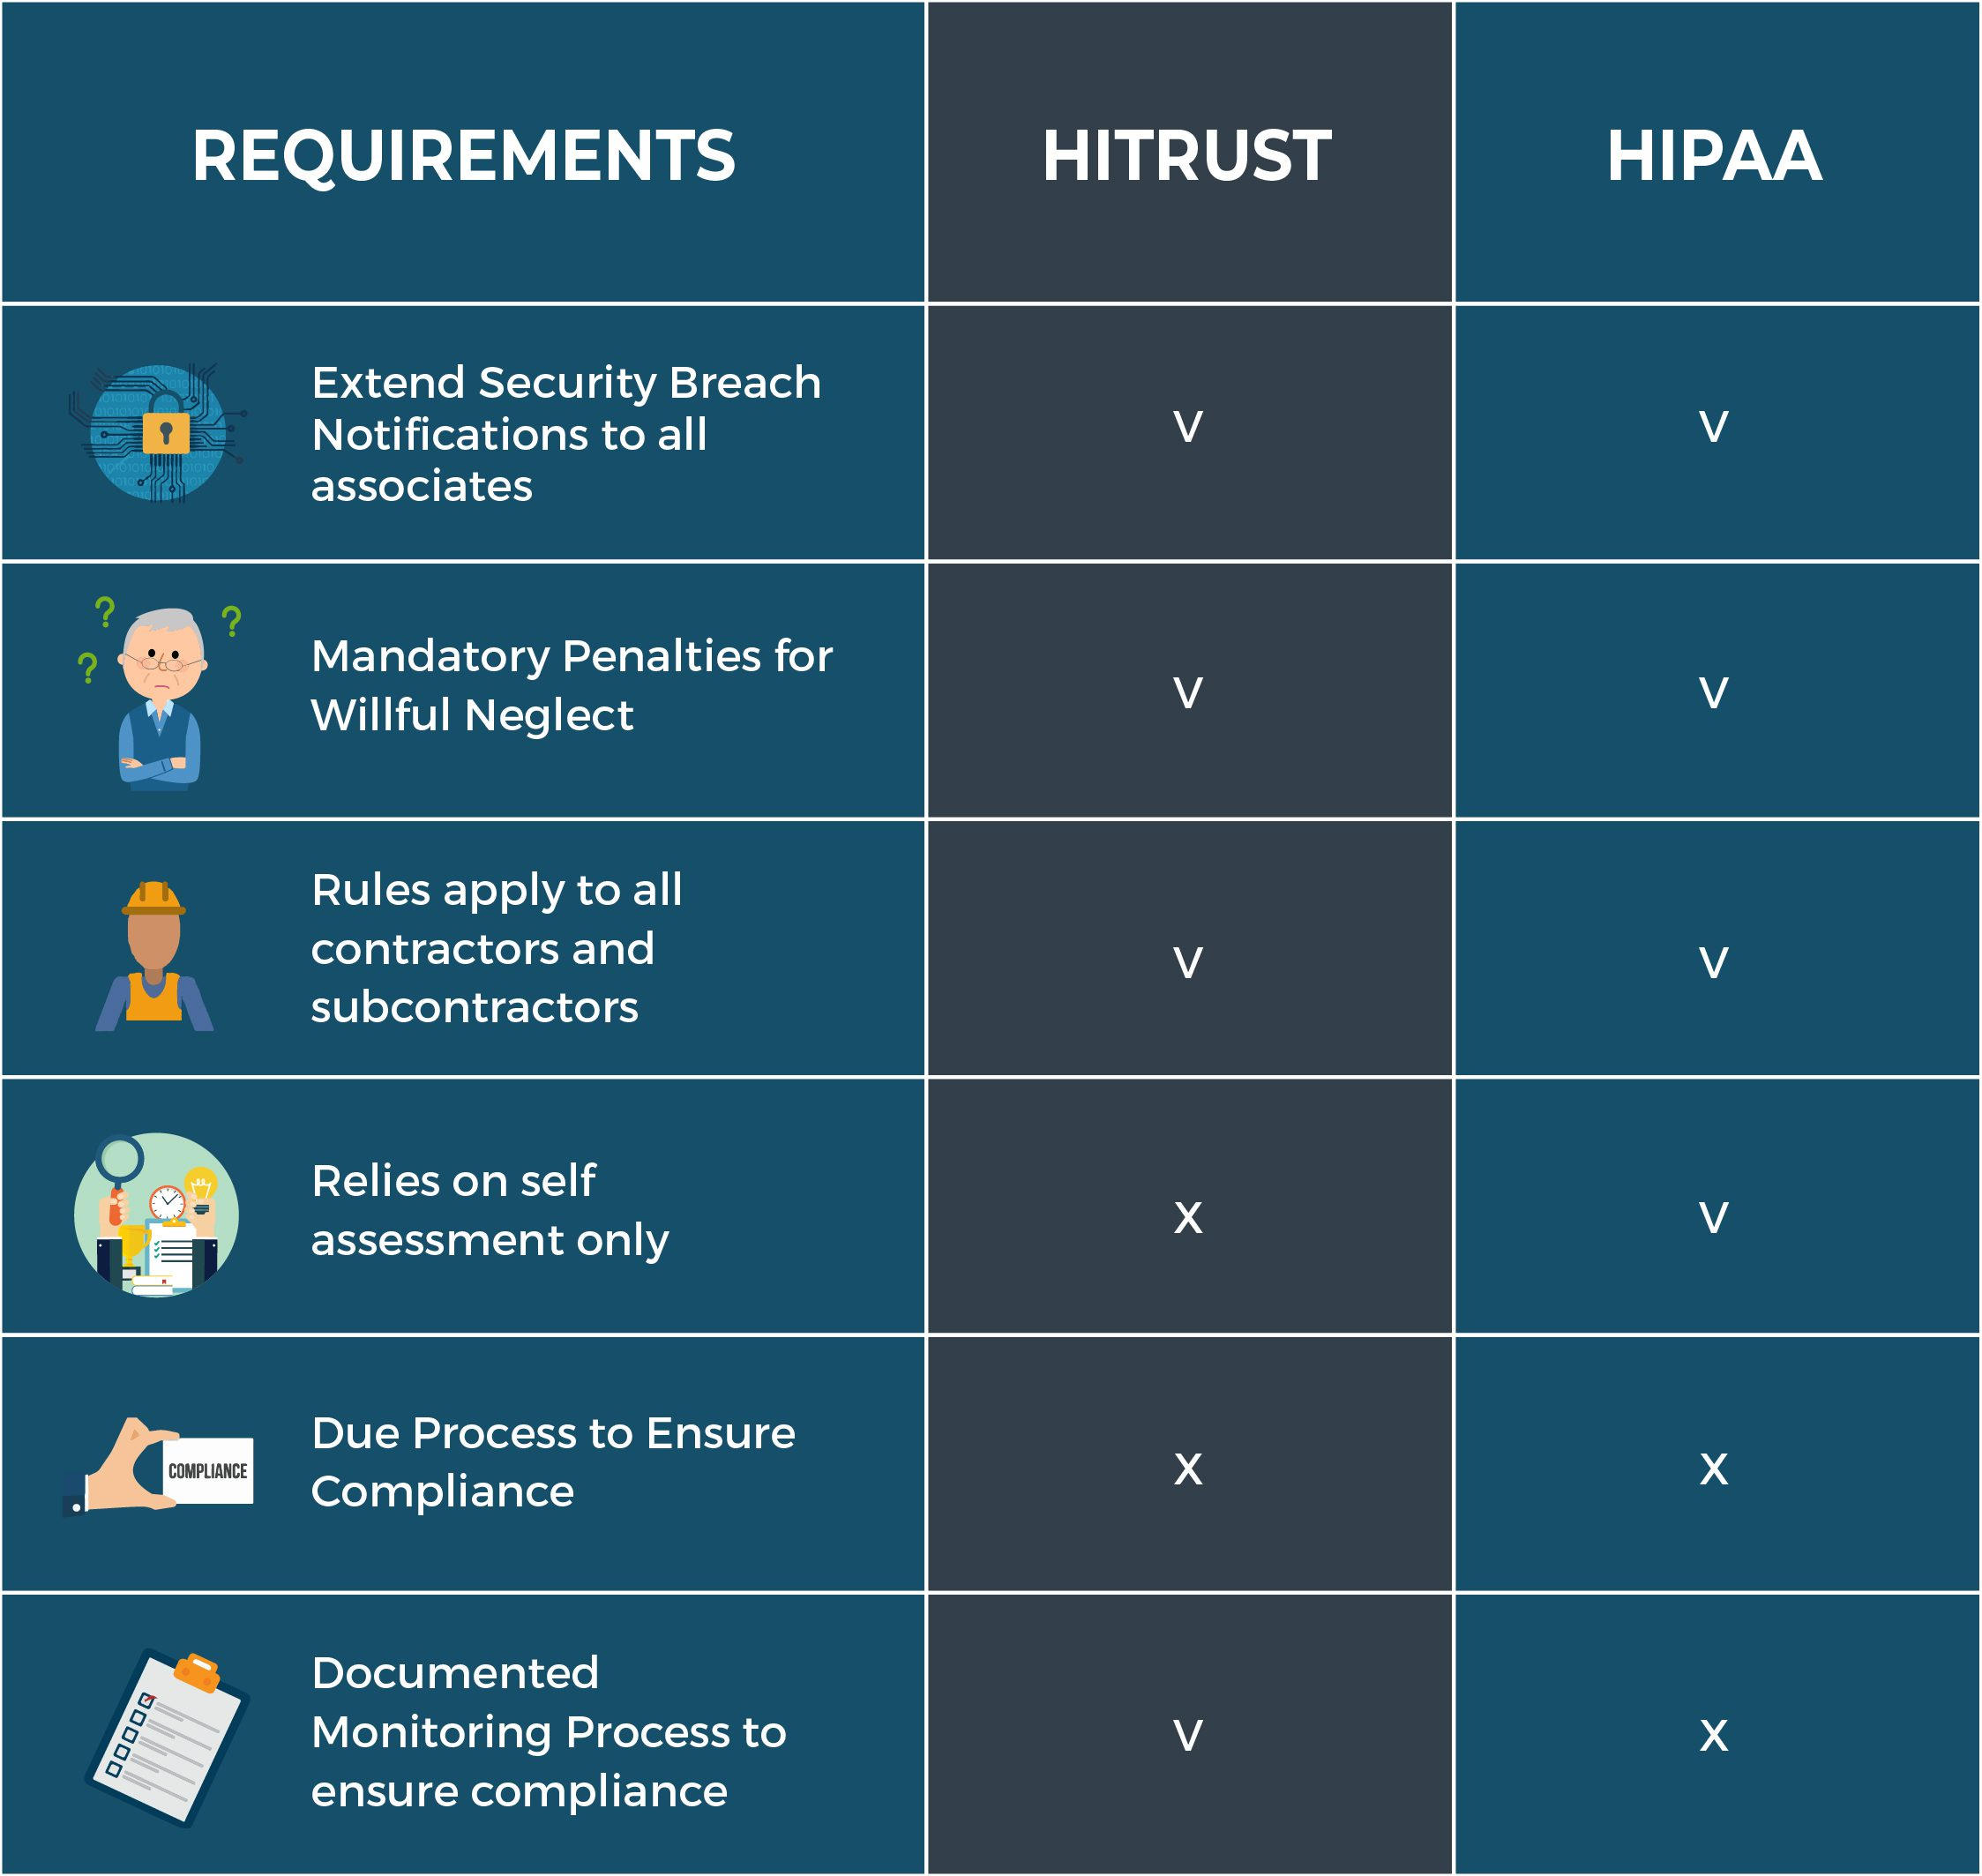 Infographic explaining the differences between HITRUST and HIPAA